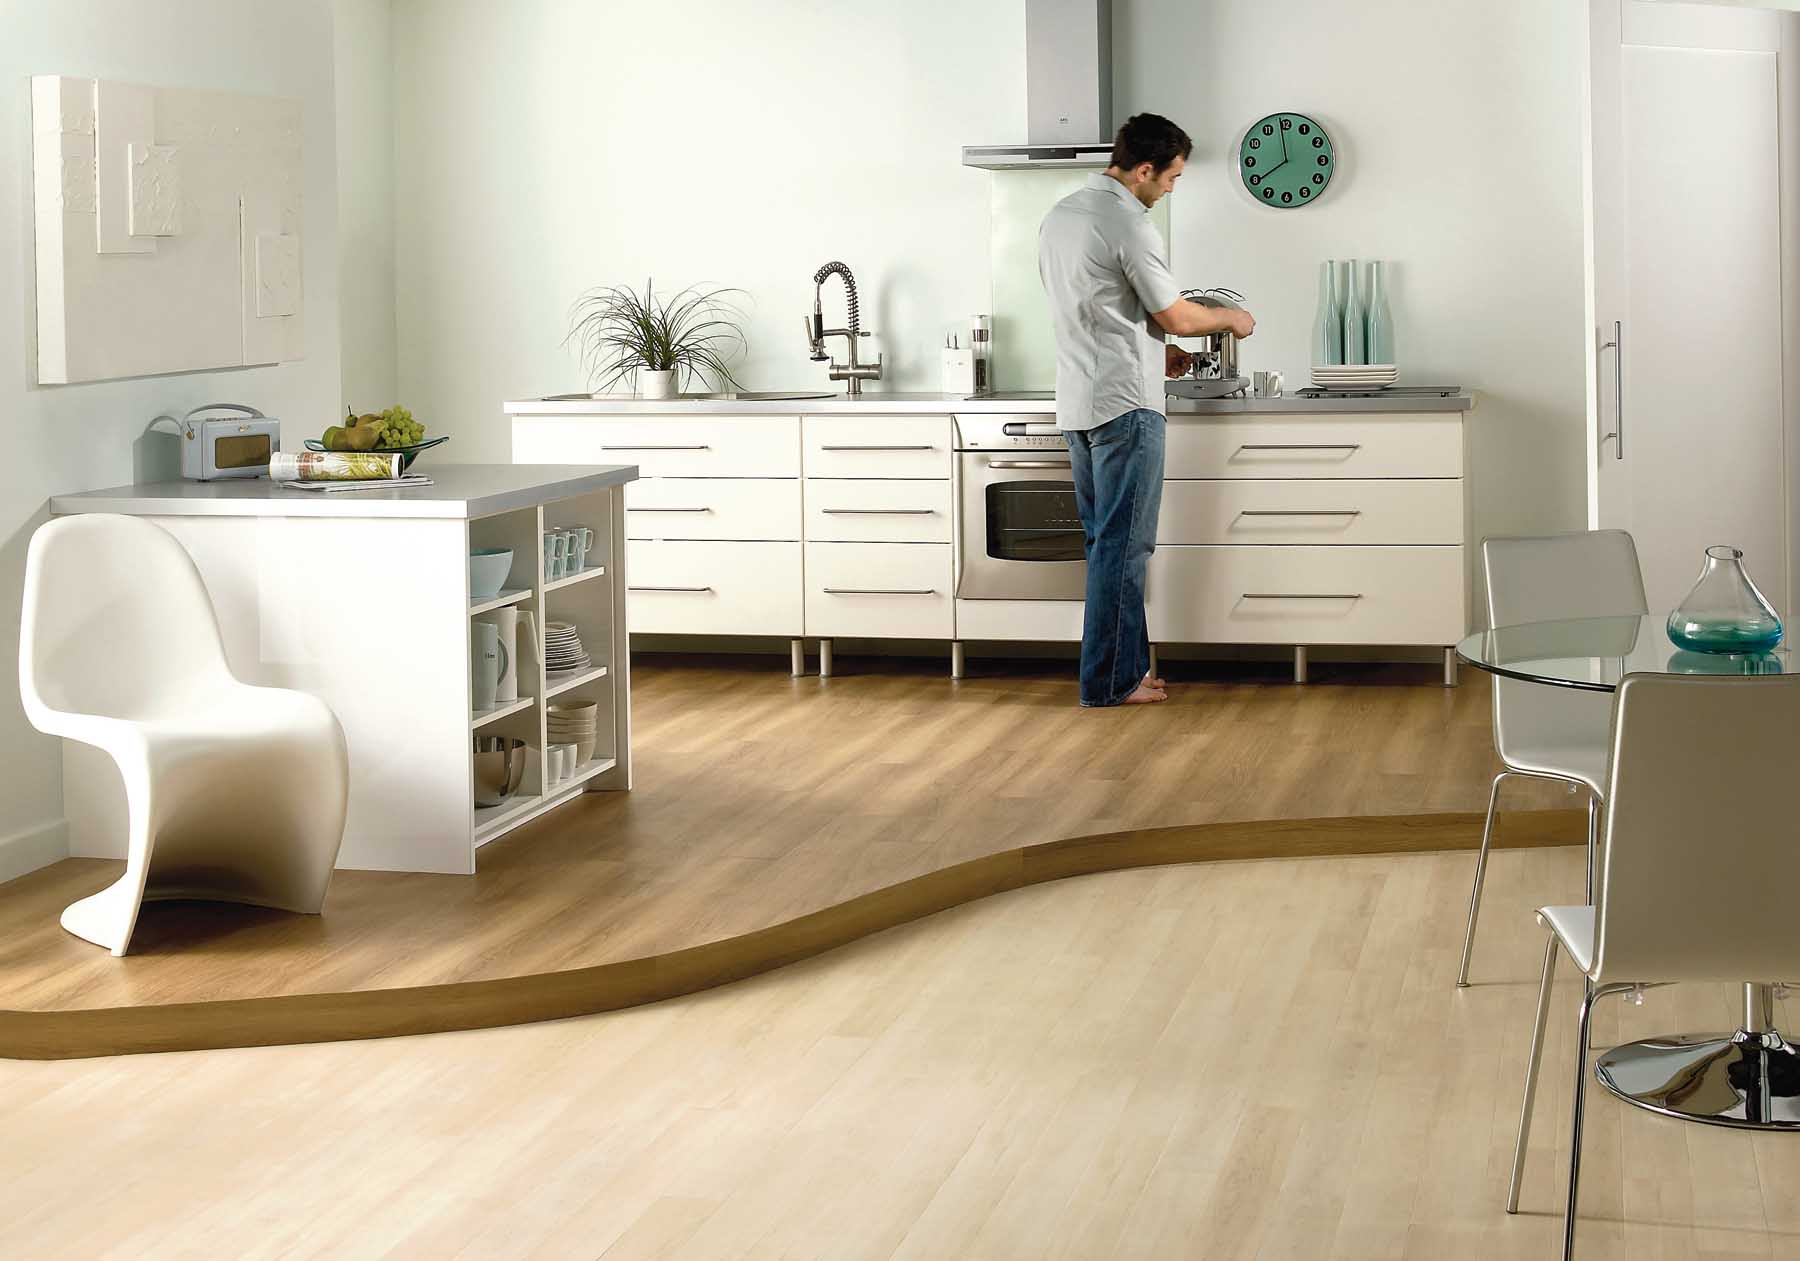 Laminate flooring kitchen delivered by Inspire Flooring Aberdeen where a man is preparing a cup of coffee